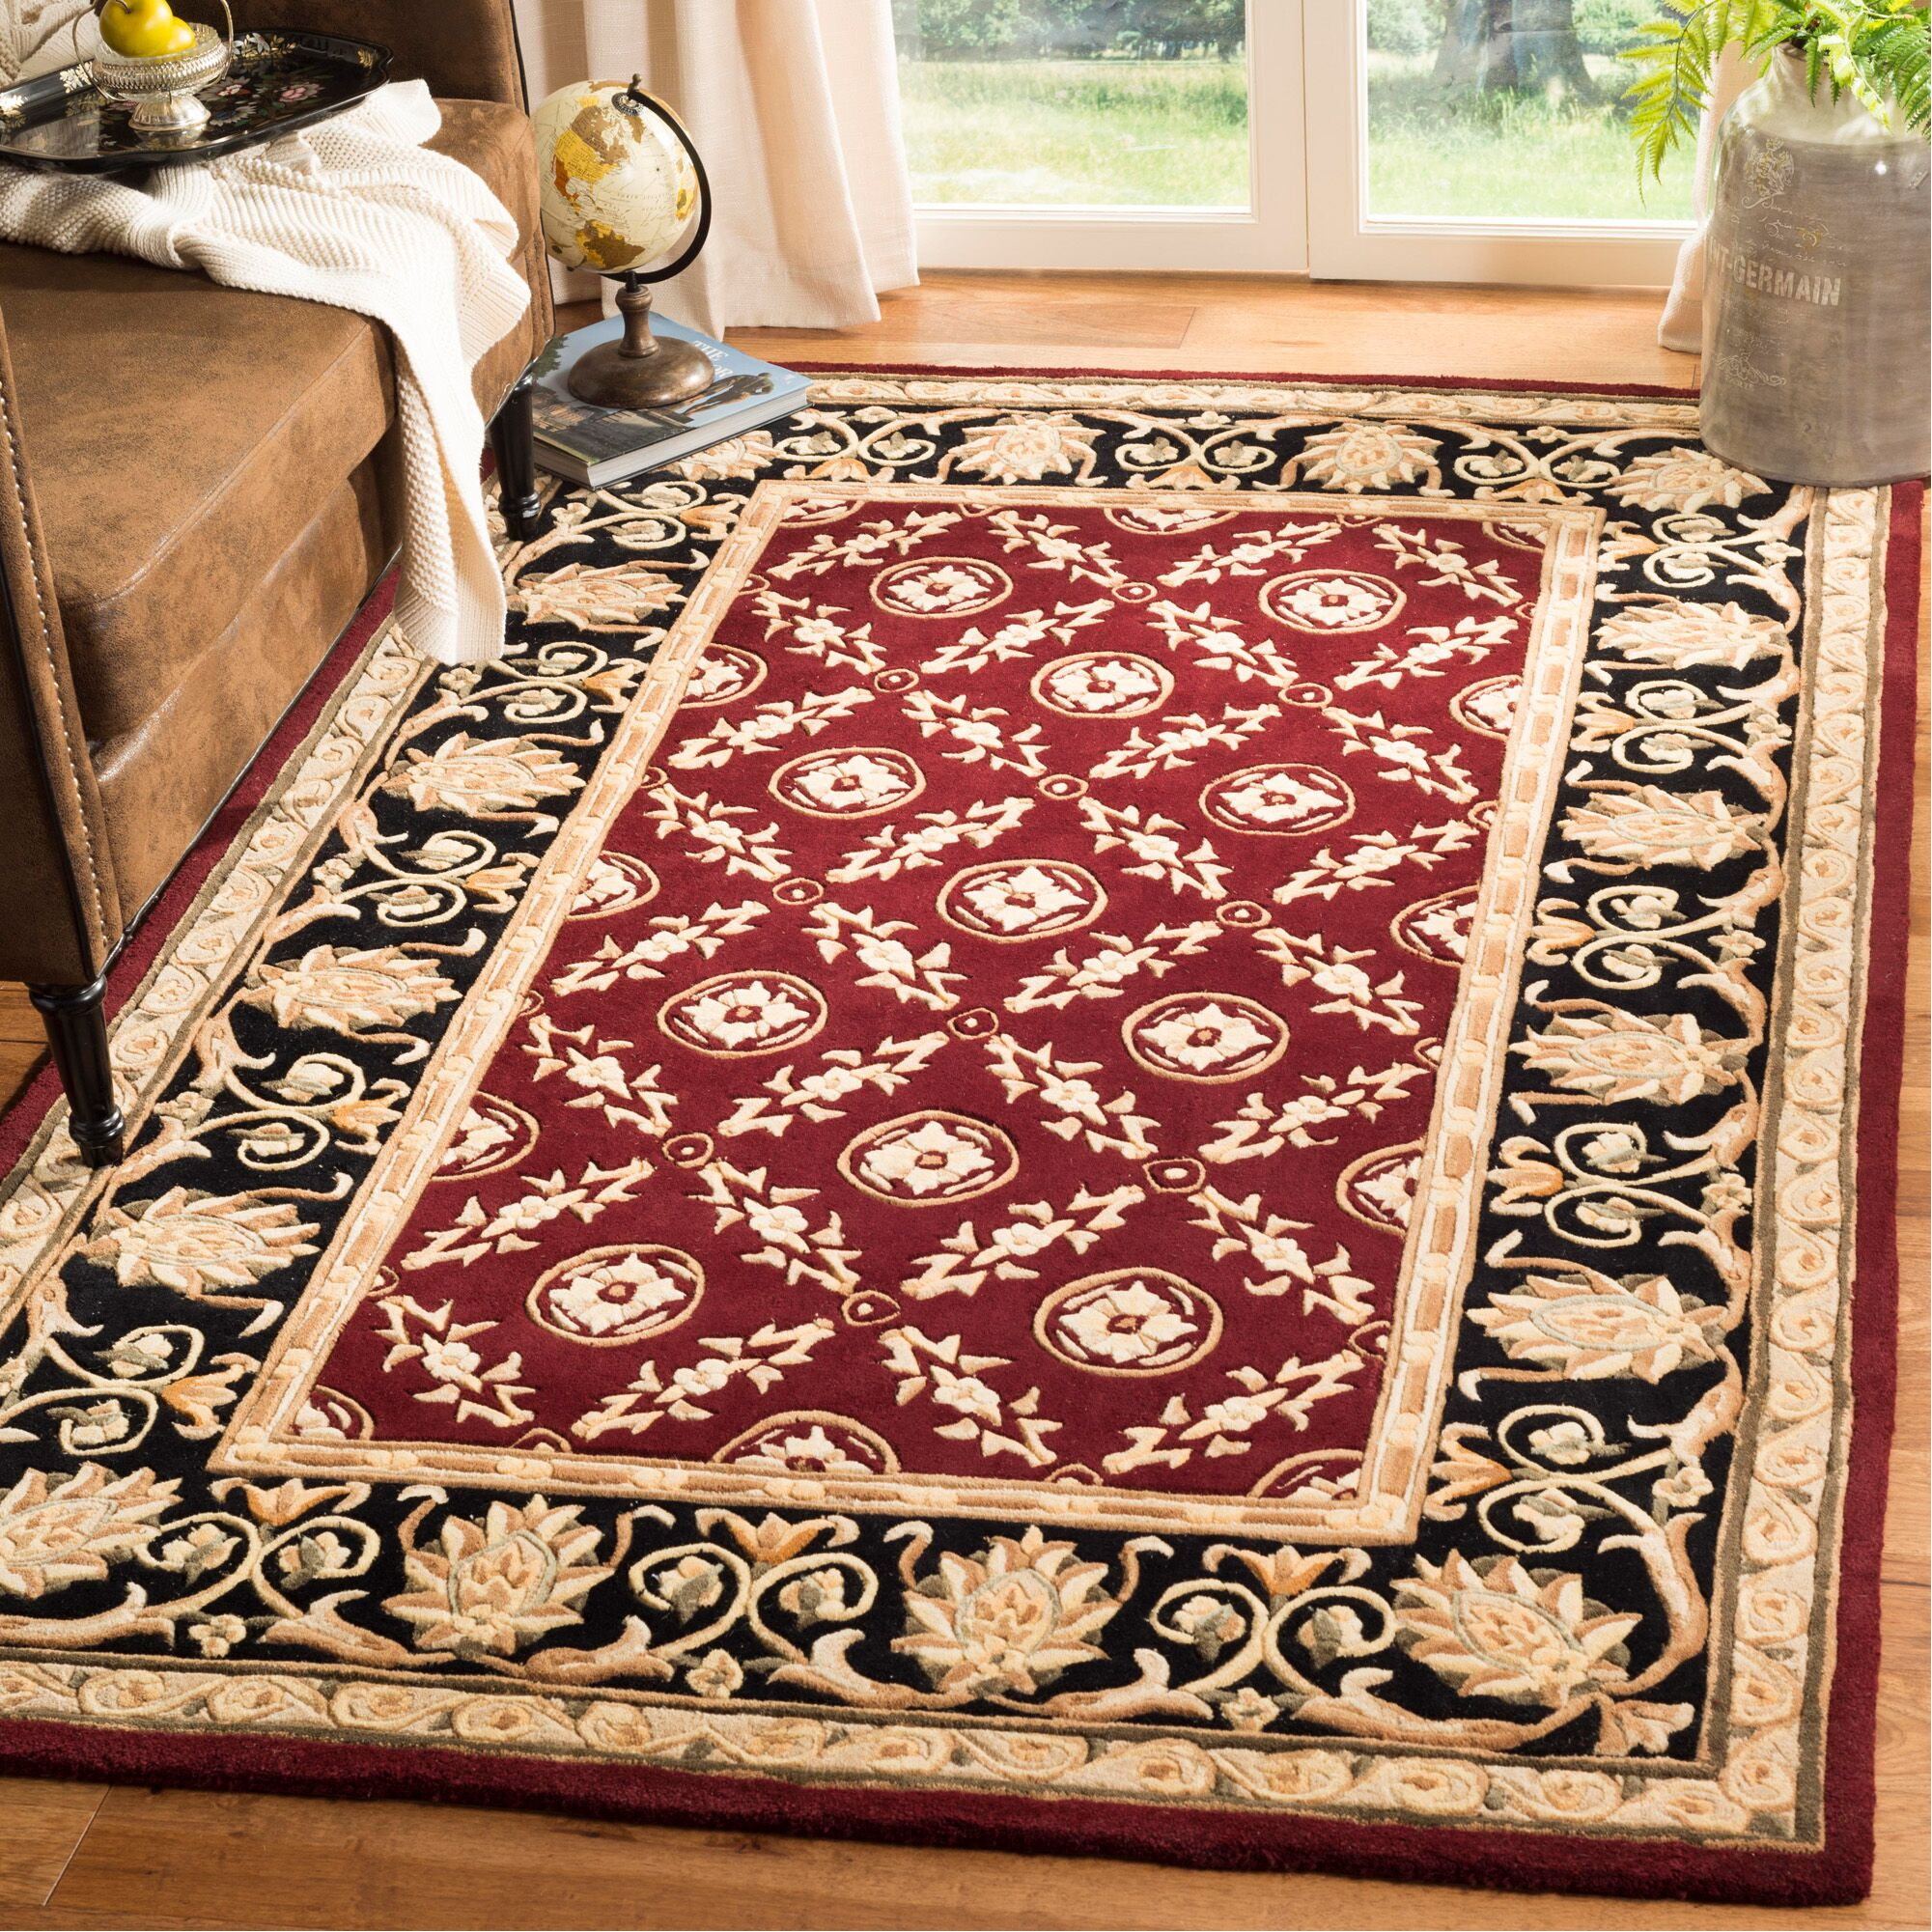 Naples Hand-Tufted Wool Burgundy/Black Area Rug Rug Size: Rectangle 5' x 8'